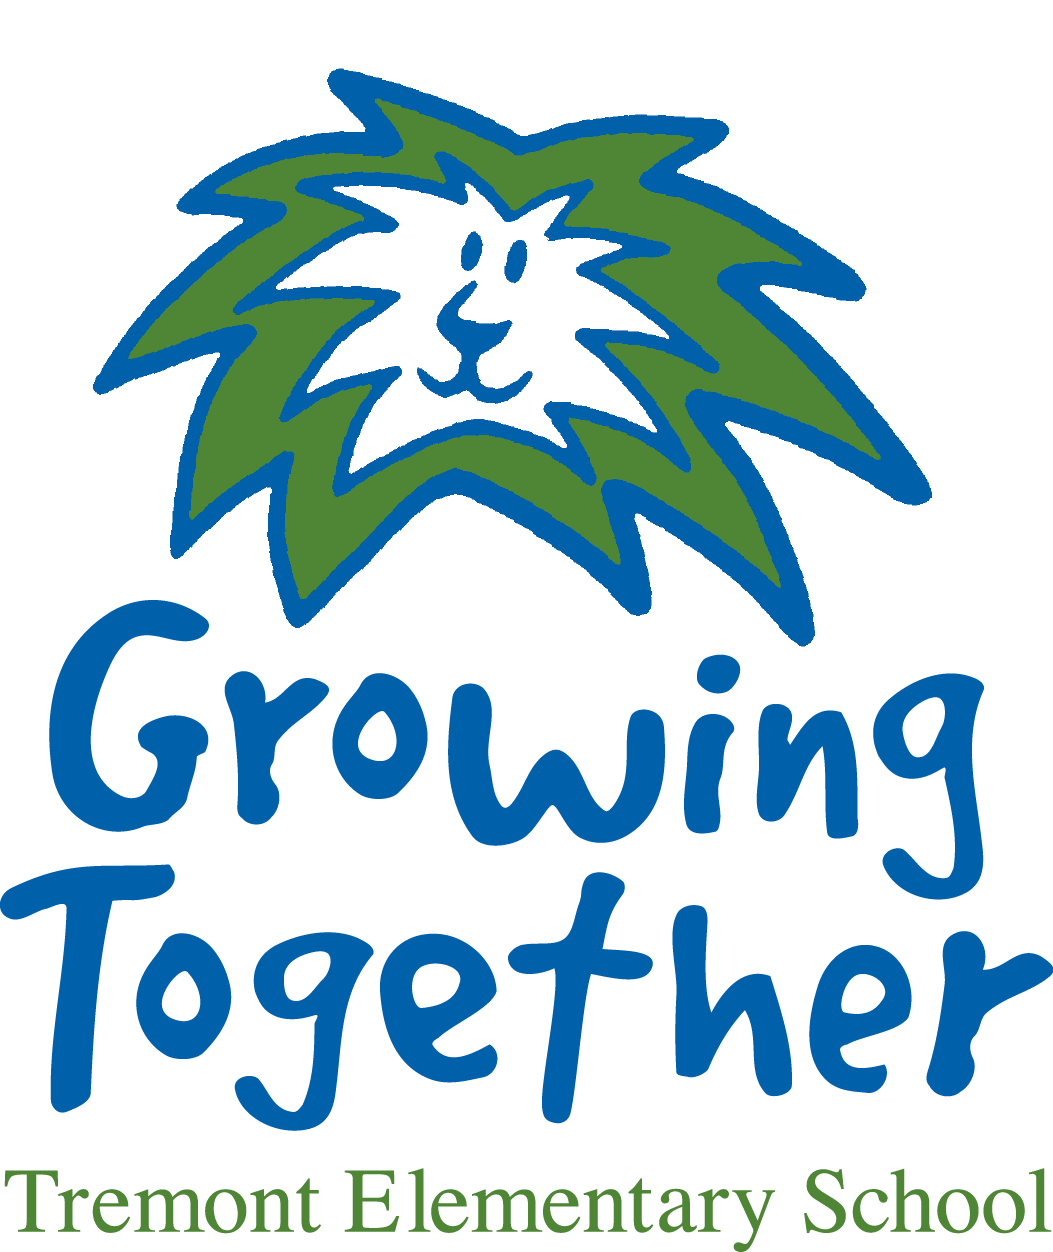 Tremont Elementary School Growing Together logo